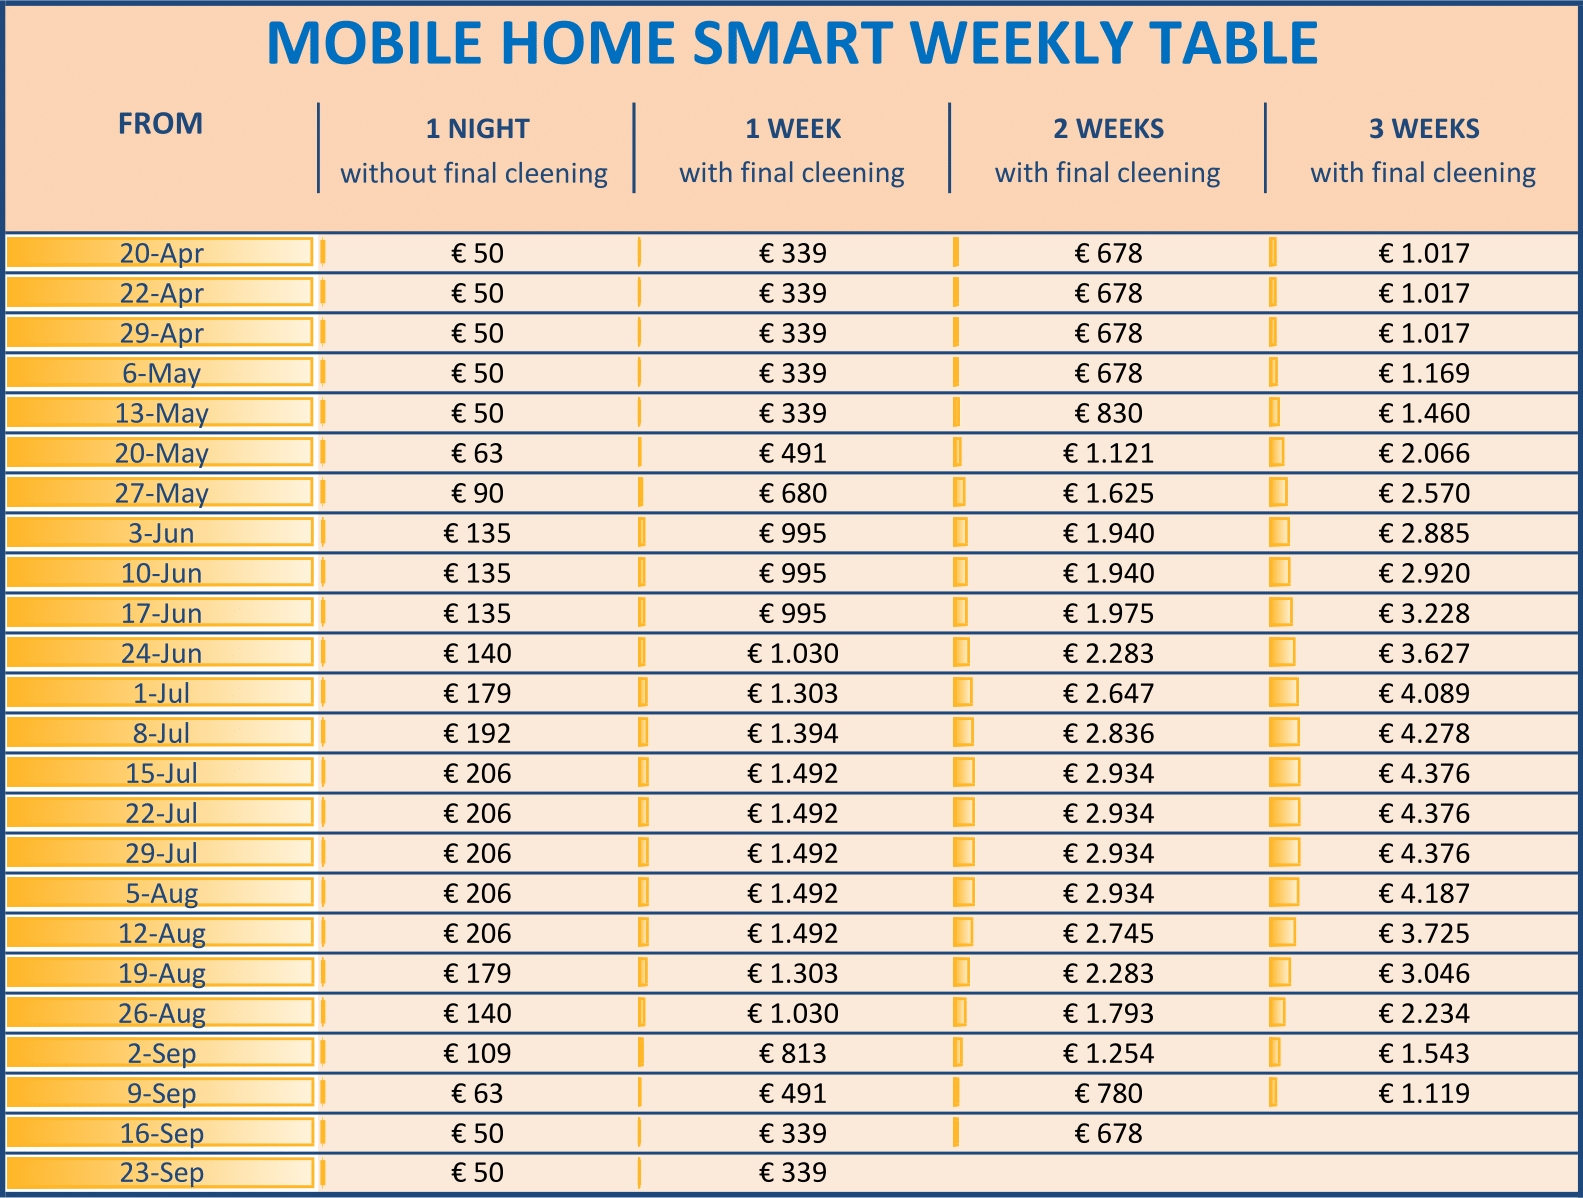 mobile homes models with Mobile Home Smart on 8432684357 further Mobile Home Kitchens From 1955 To 1960 likewise Watch together with 3449063375 furthermore 8814291756.